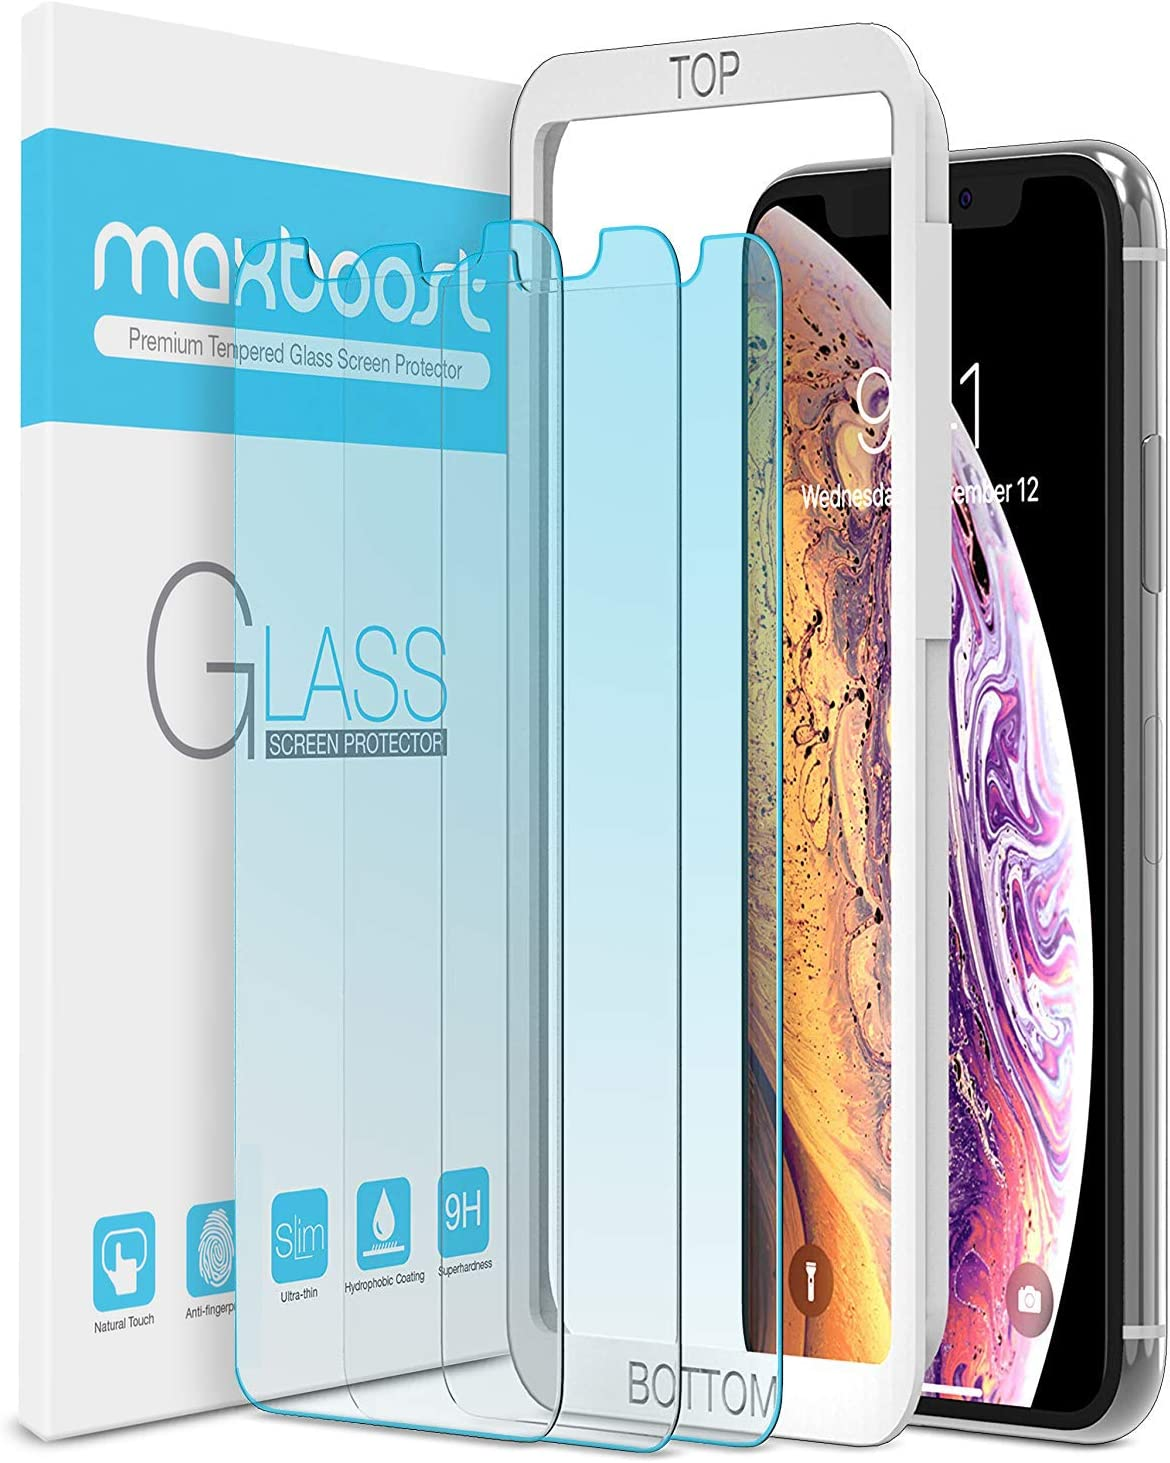 """Maxboost (3 Pack) Screen Protector with Anti-Blue Designed for Apple iPhone 11 Pro/iPhone XS/iPhone X (5.8"""")[Blue light Filtering + Eye Protection Tempered Glass] Advanced HD Glass Work Most Case"""